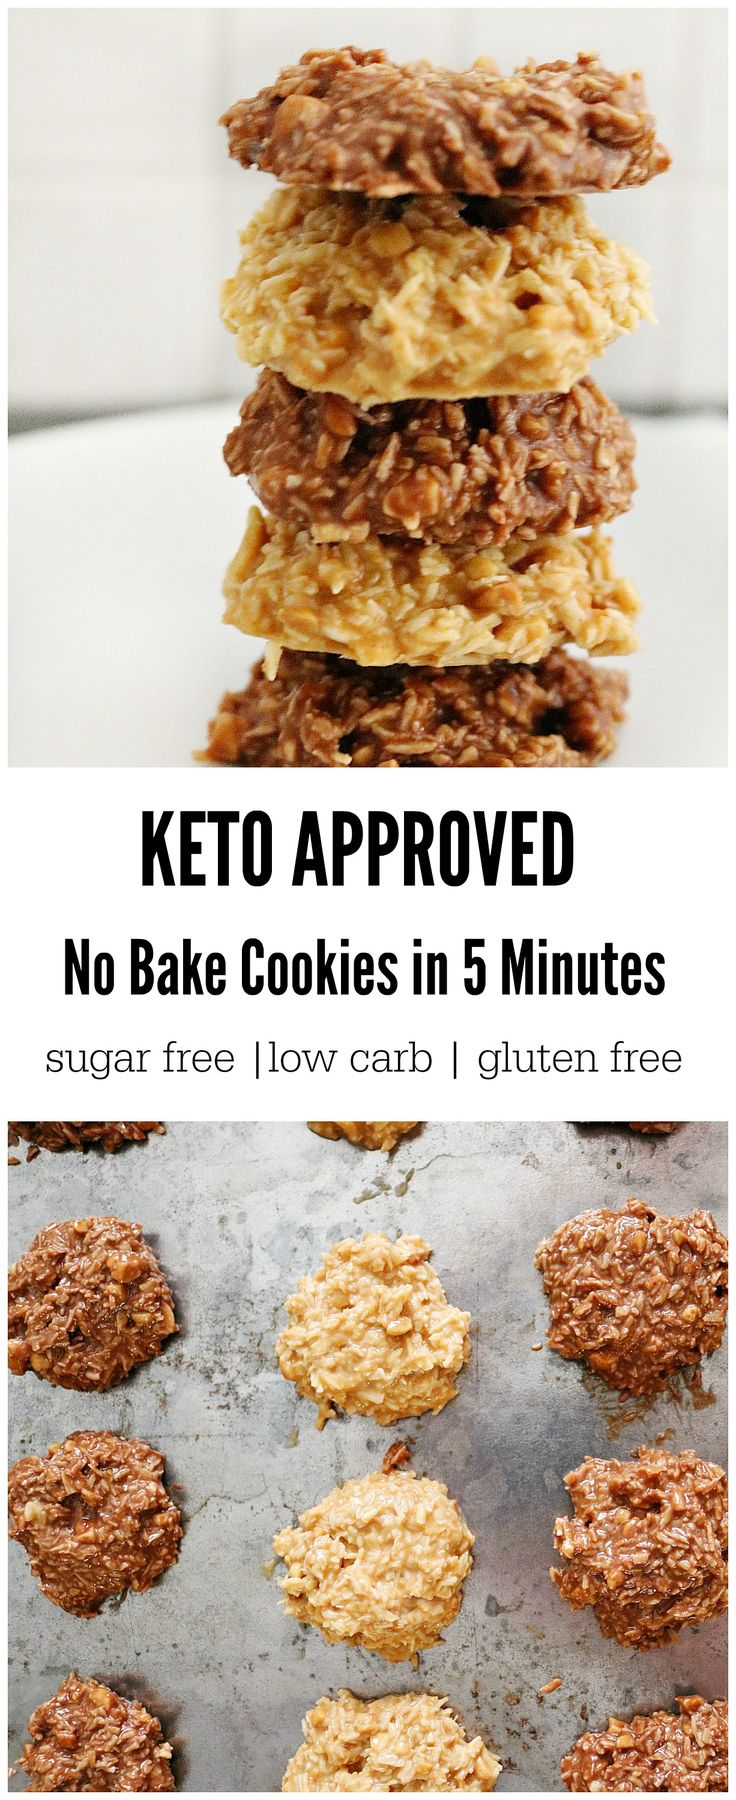 keto no bake cookies - crunchy peanut butter, coconut flakes, liquid stevia (cocoa, optional)